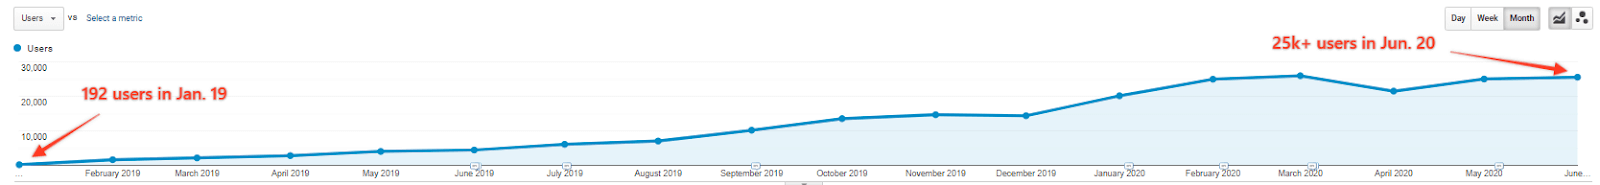 chart showing organic traffic growth in google analytics